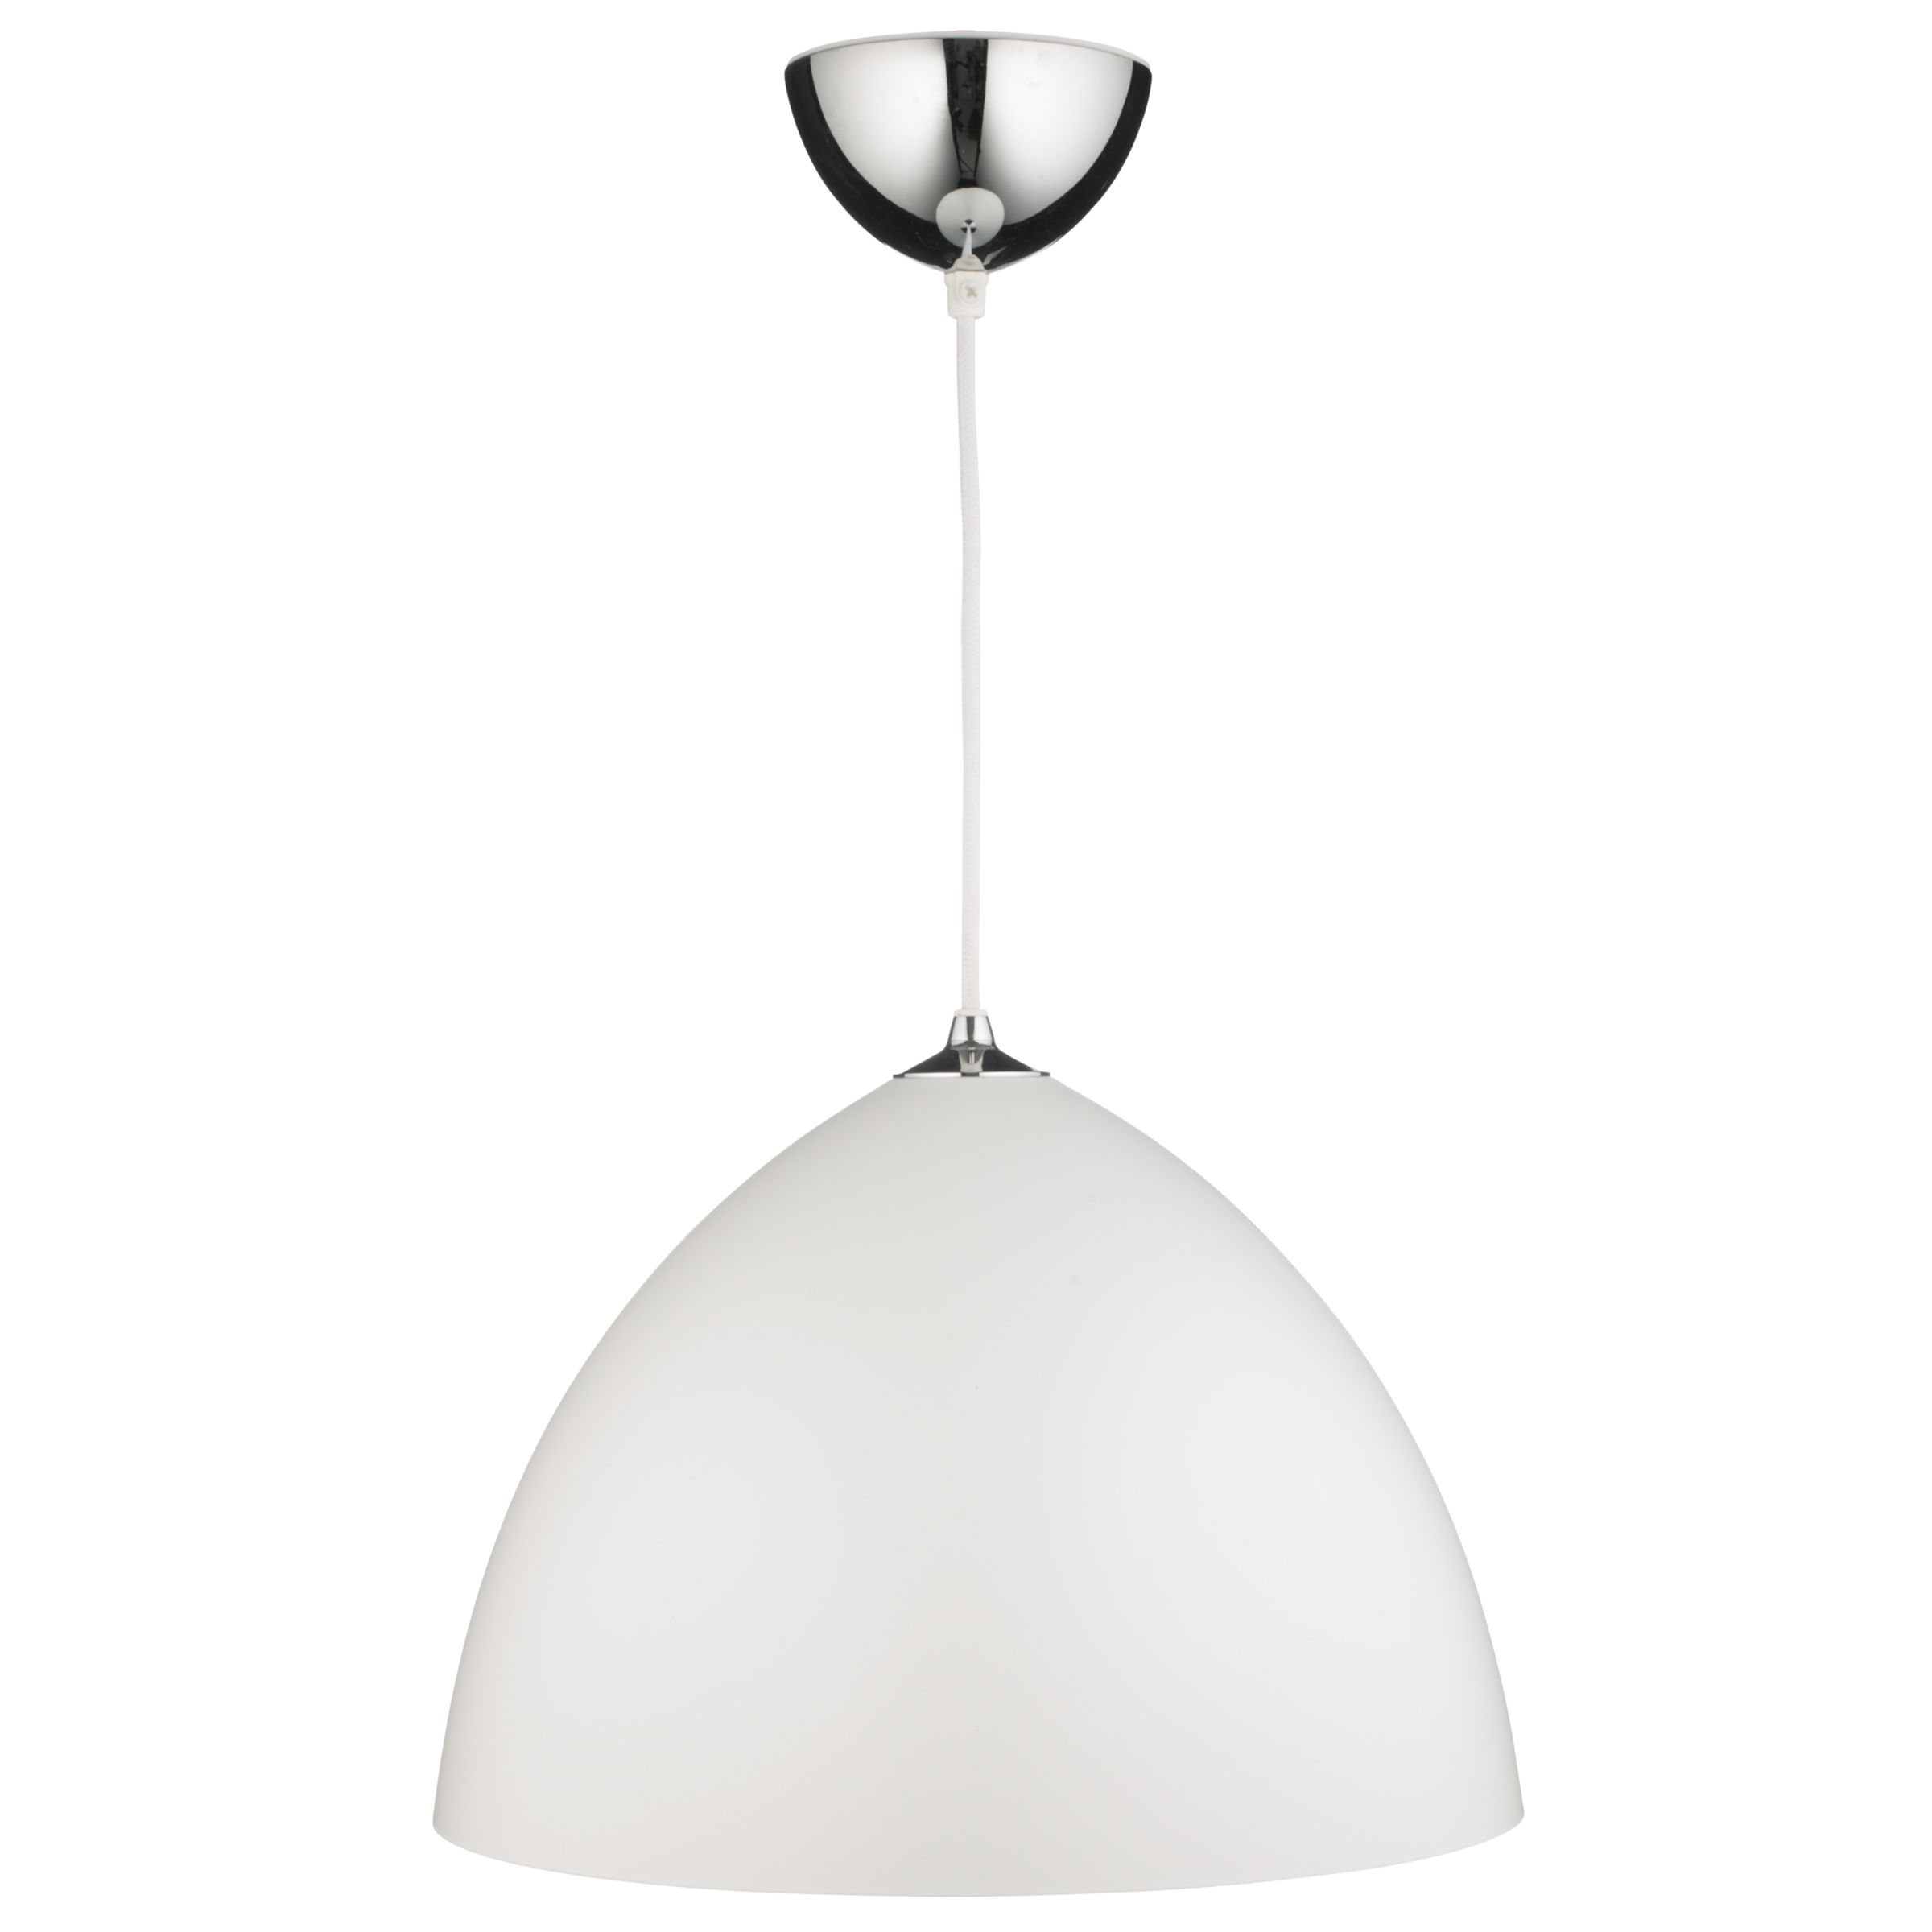 John Lewis White Ceiling Lights : John lewis bogart ceiling light white review compare